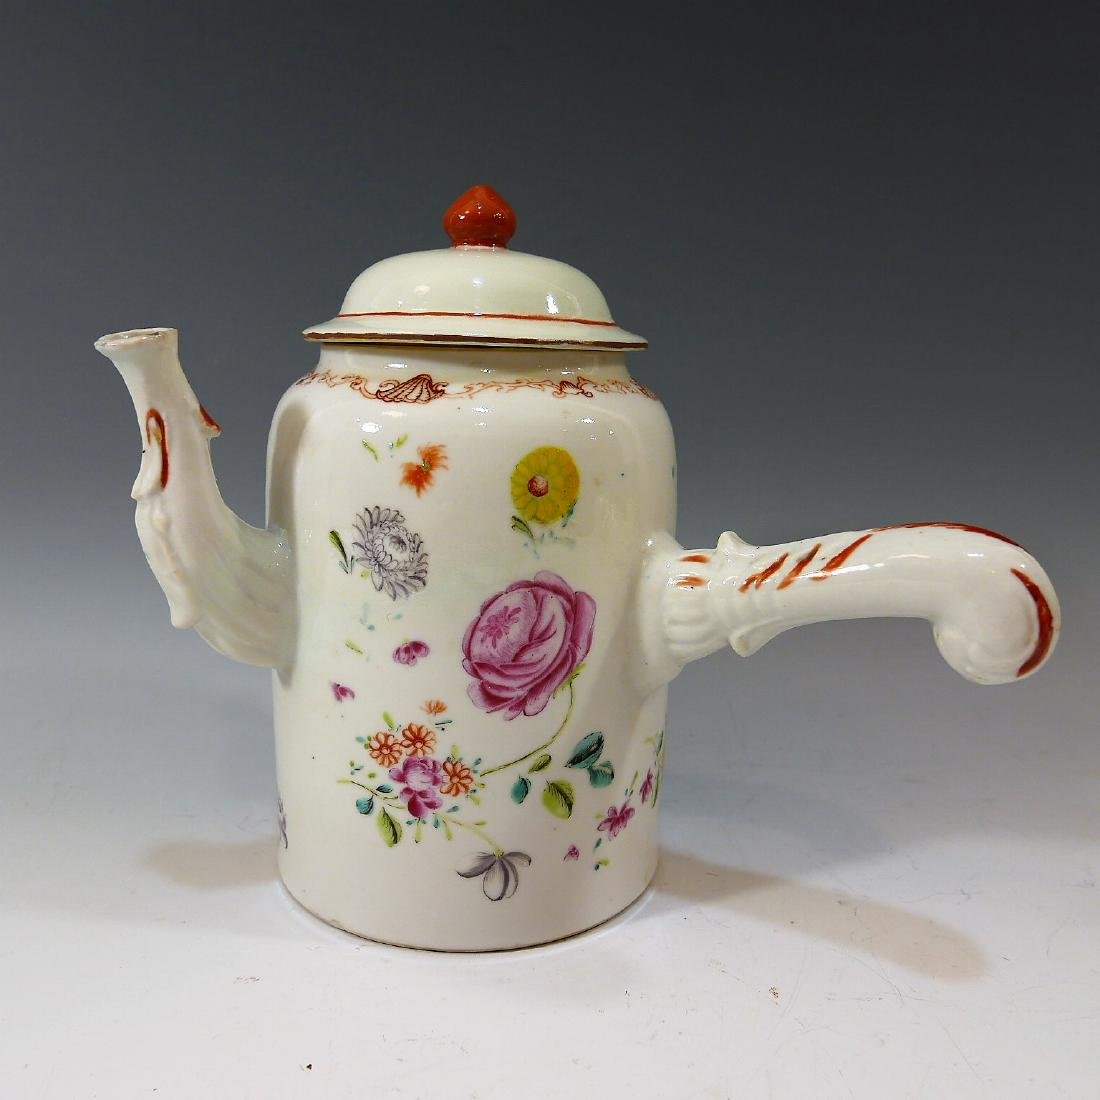 CHINESE ANTIQUE FAMILLE ROSE CHOCOLATE POT - 18TH